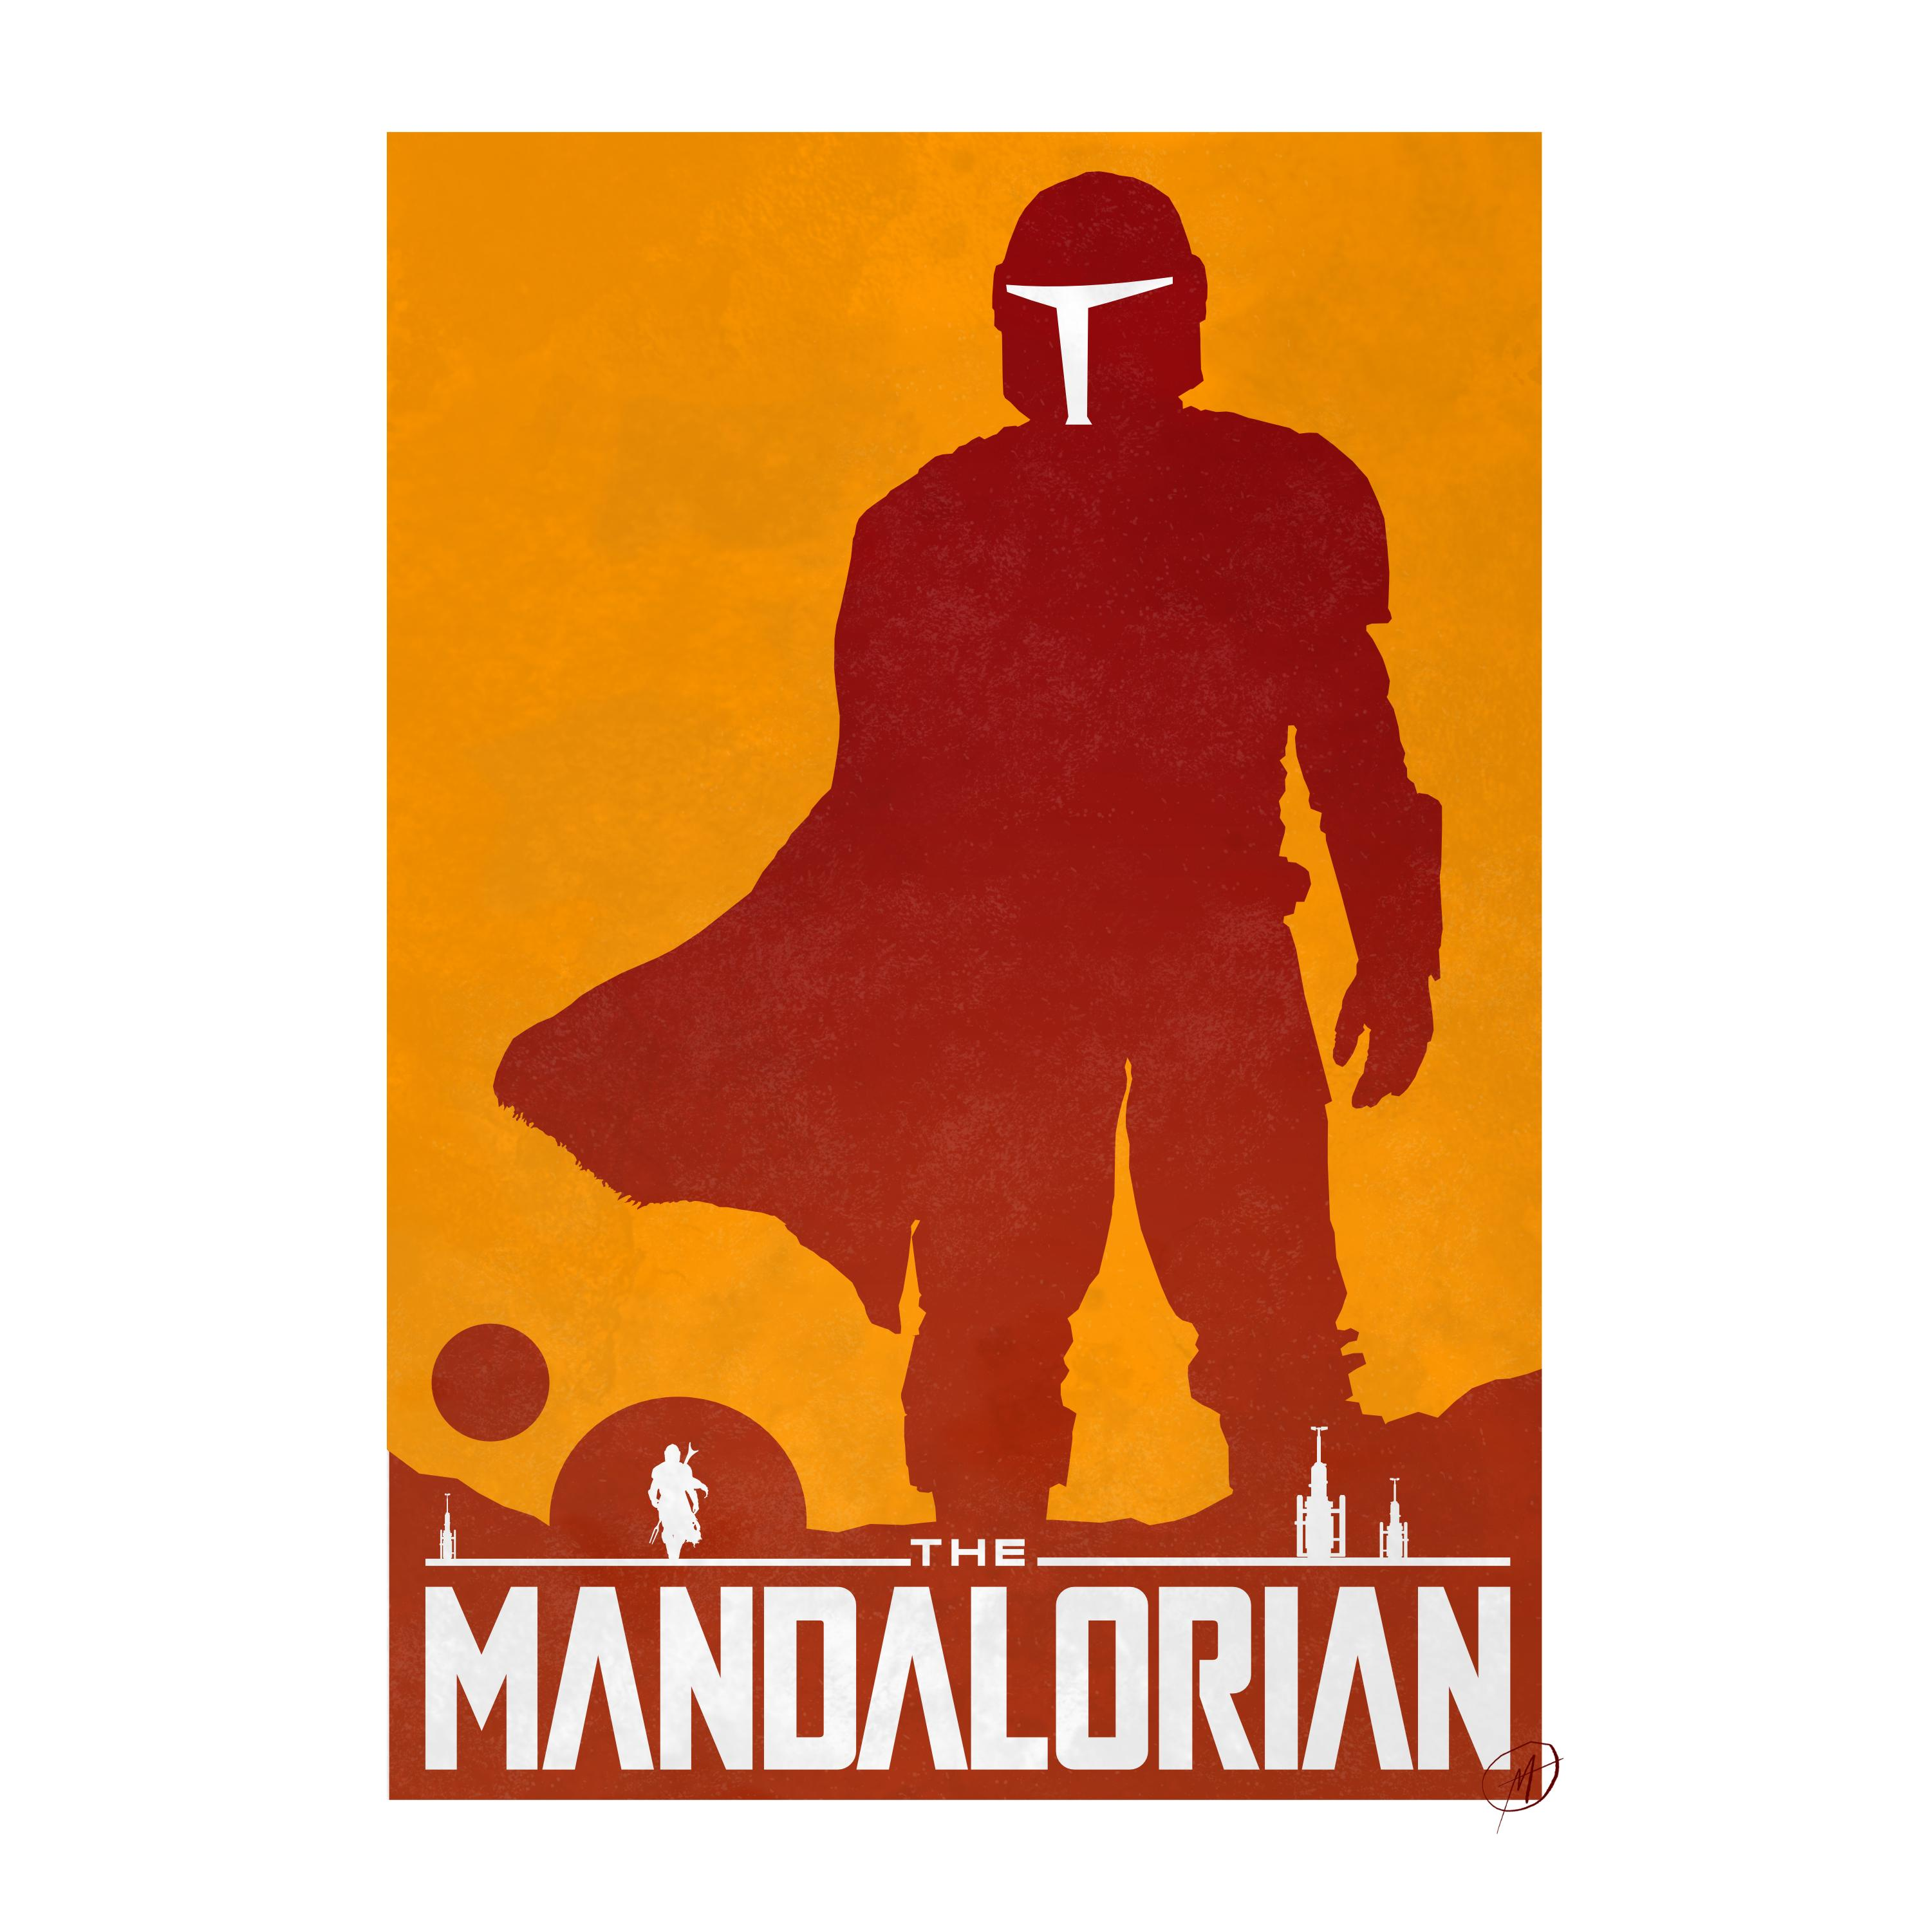 Super excited for The Mandalorian so I made this!